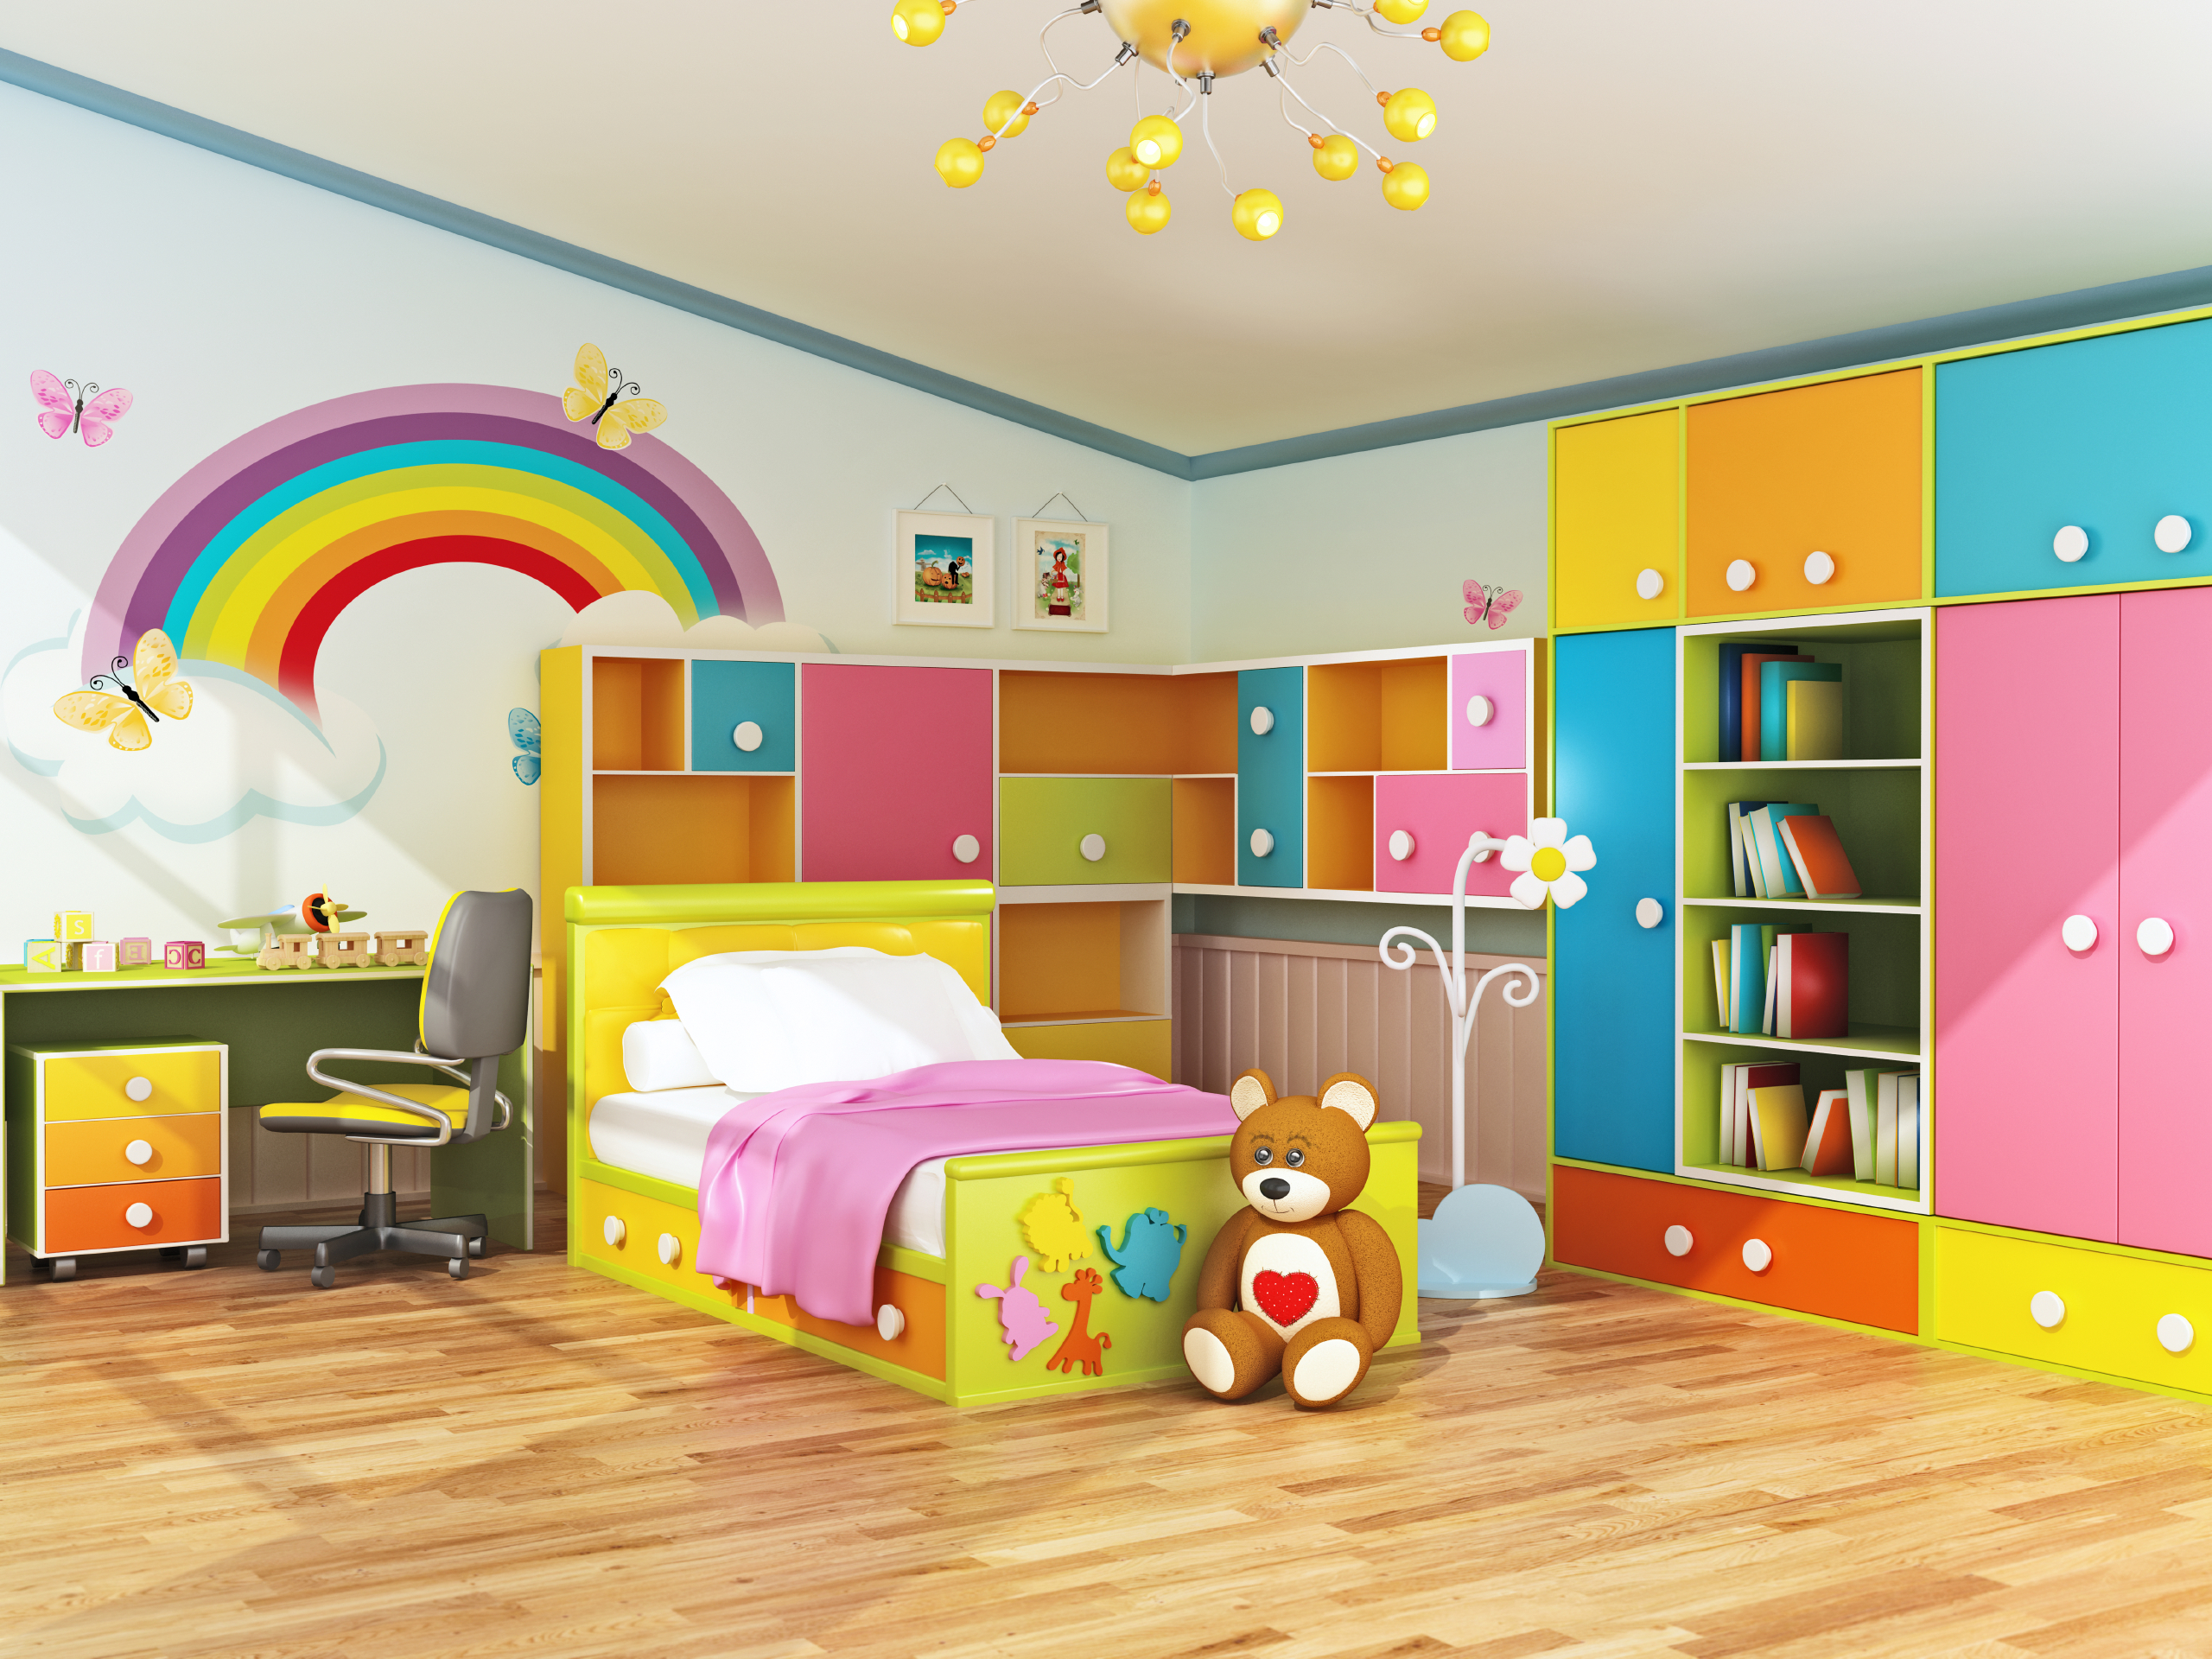 Plan ahead when decorating kids 39 bedrooms rismedia 39 s for Children bedroom design